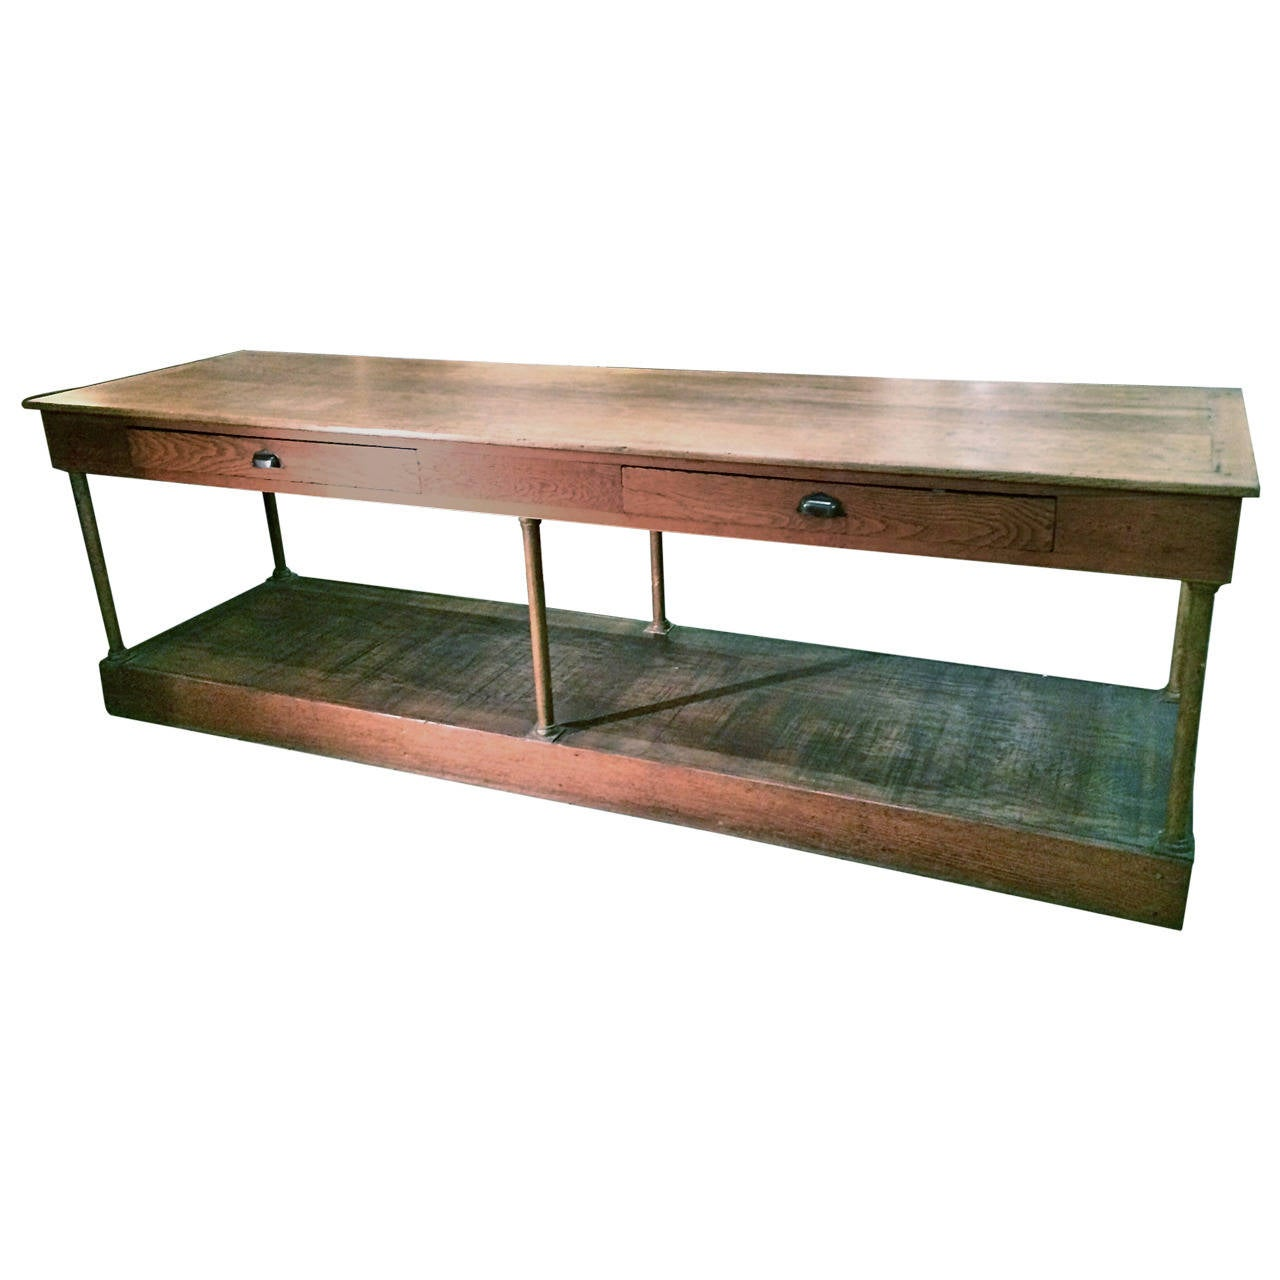 19th C FrenchWalnut Shop Counter 1